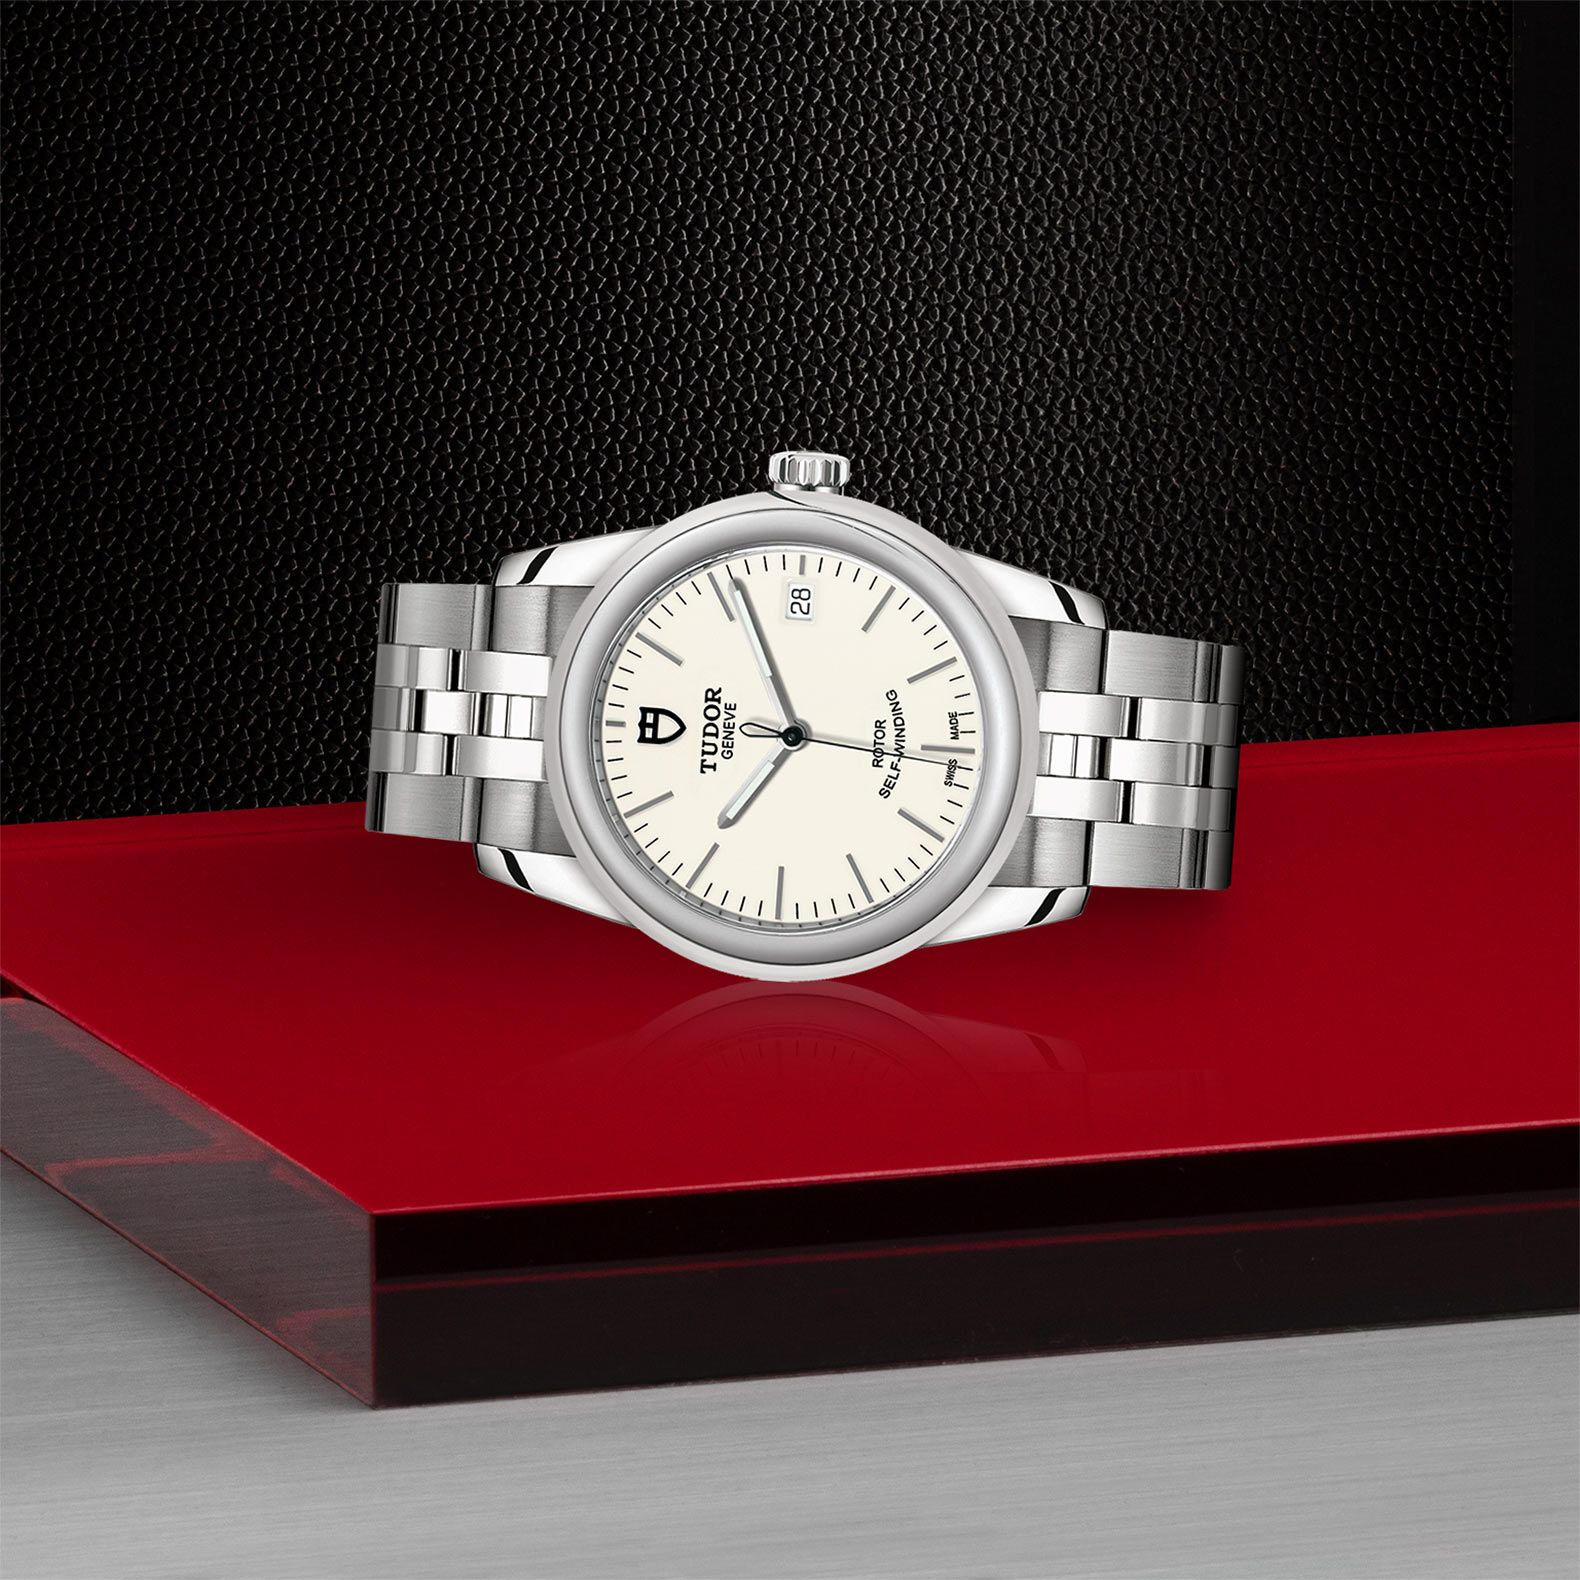 GLAMOUR DATE 36 55000 - 0103